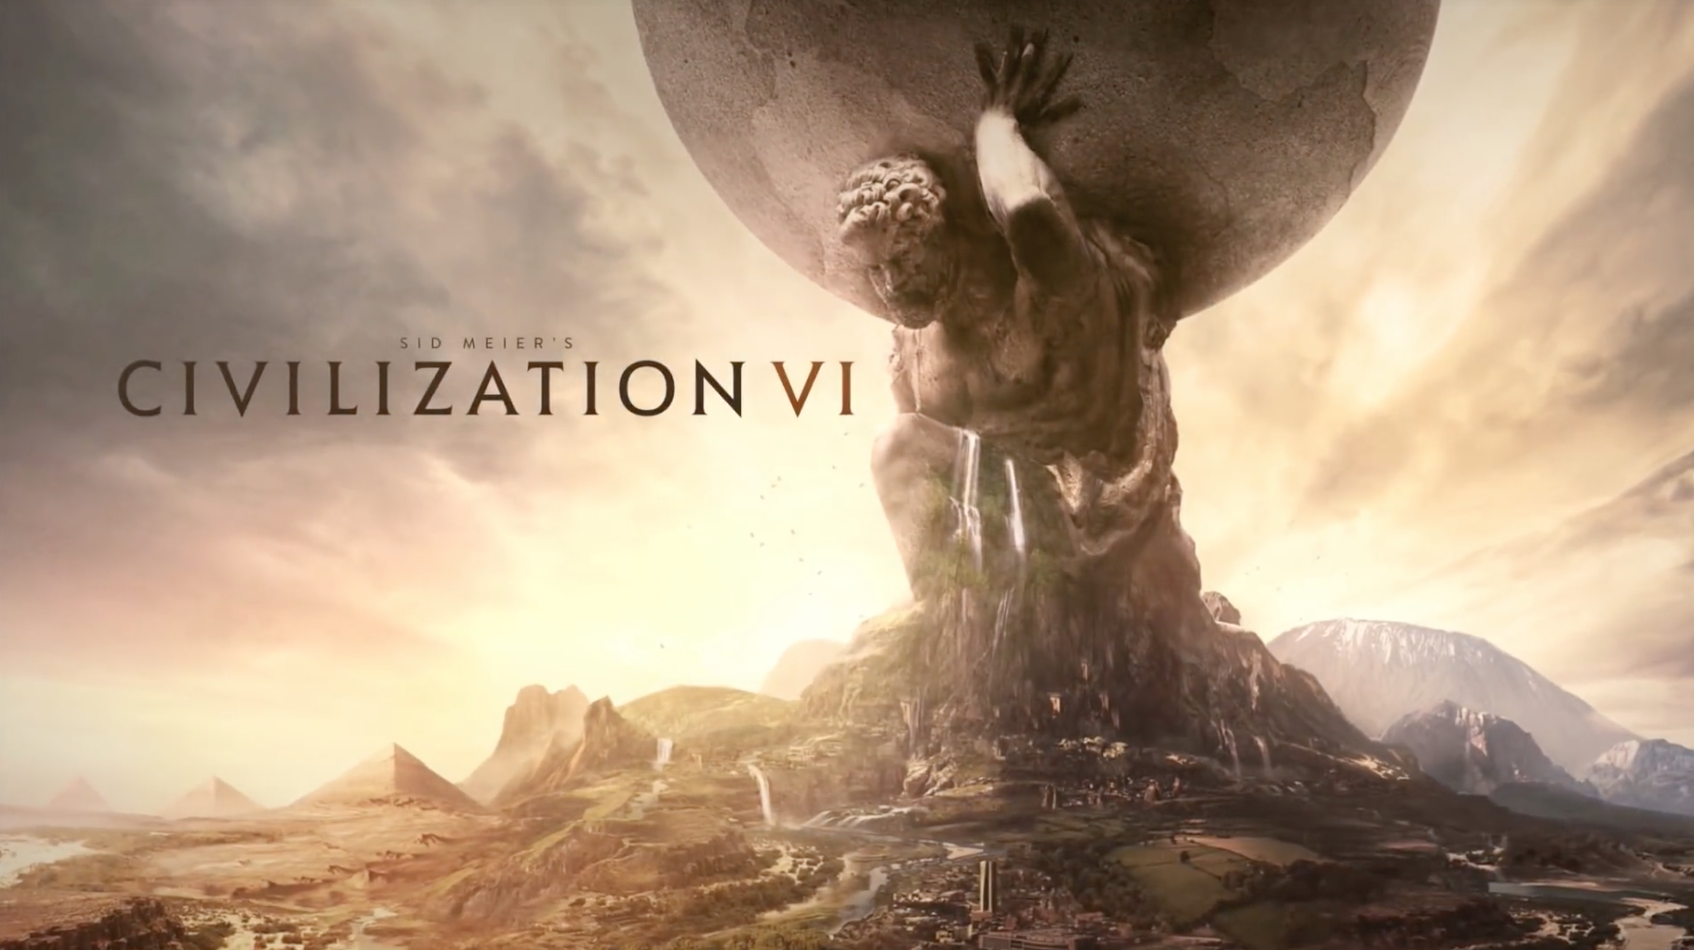 Civilization VI is finally available on iPhone and it's not cheap